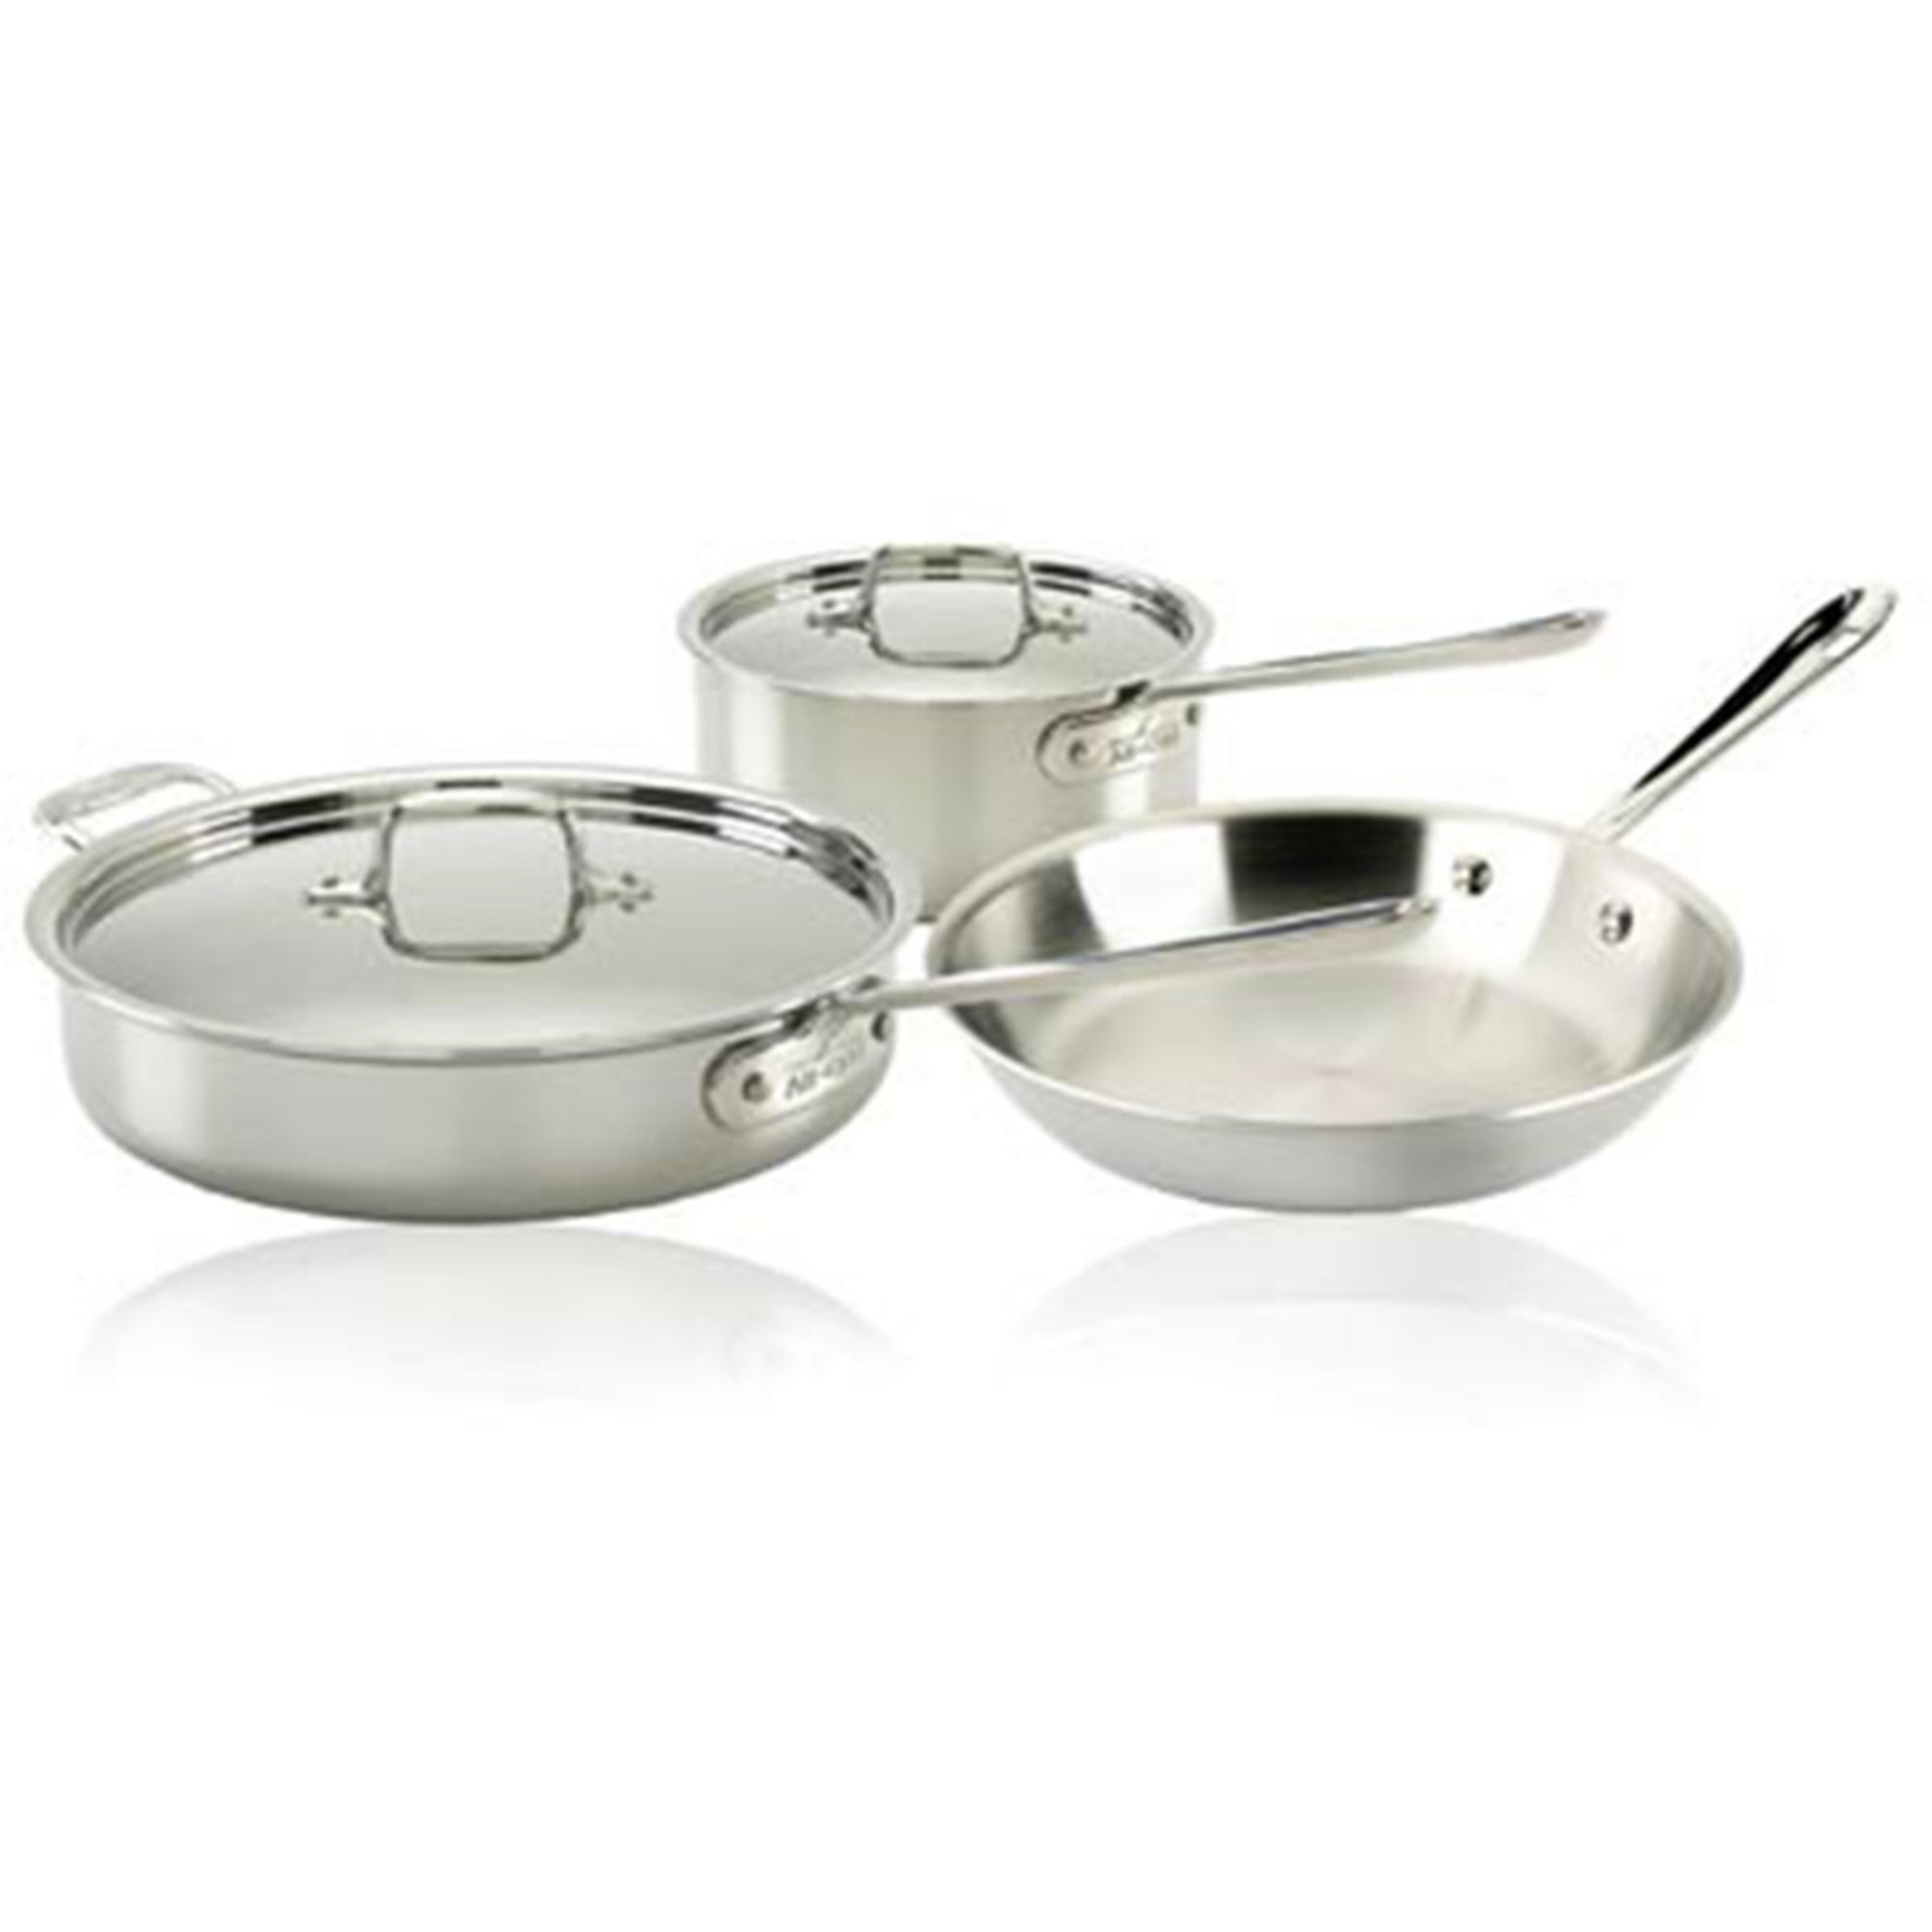 All-Clad VIP Factory Seconds Sale. Good cookware is an investment, and All-Clad is one of the best brands in the category. All-Clad via Home & Cook takes up to 77% off a selection of cookware.